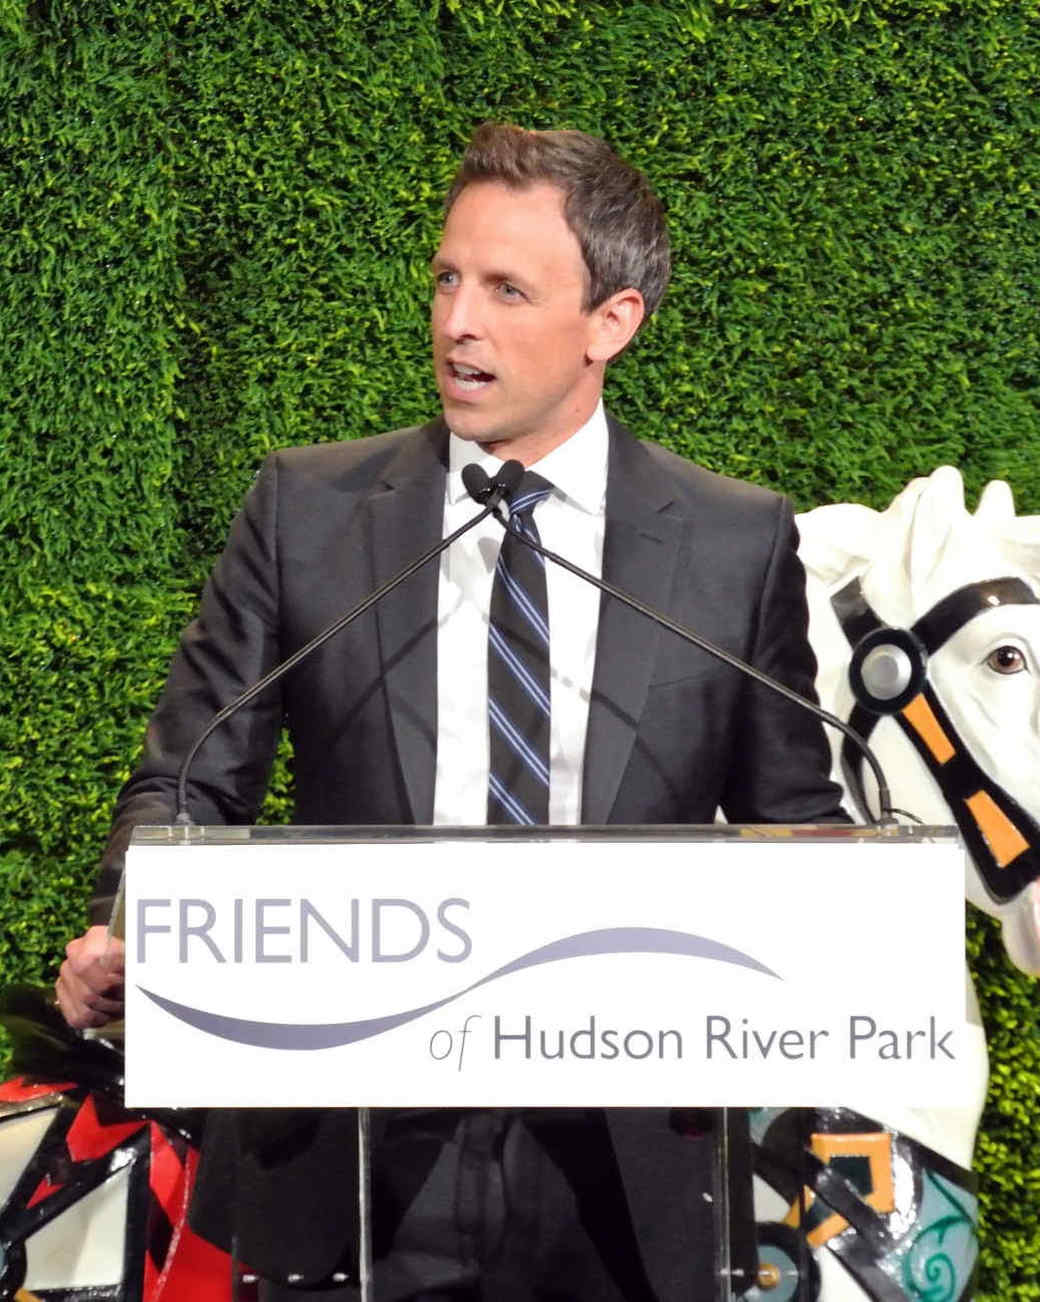 friends-of-hudson-river-gala-seth-meyer.jpg